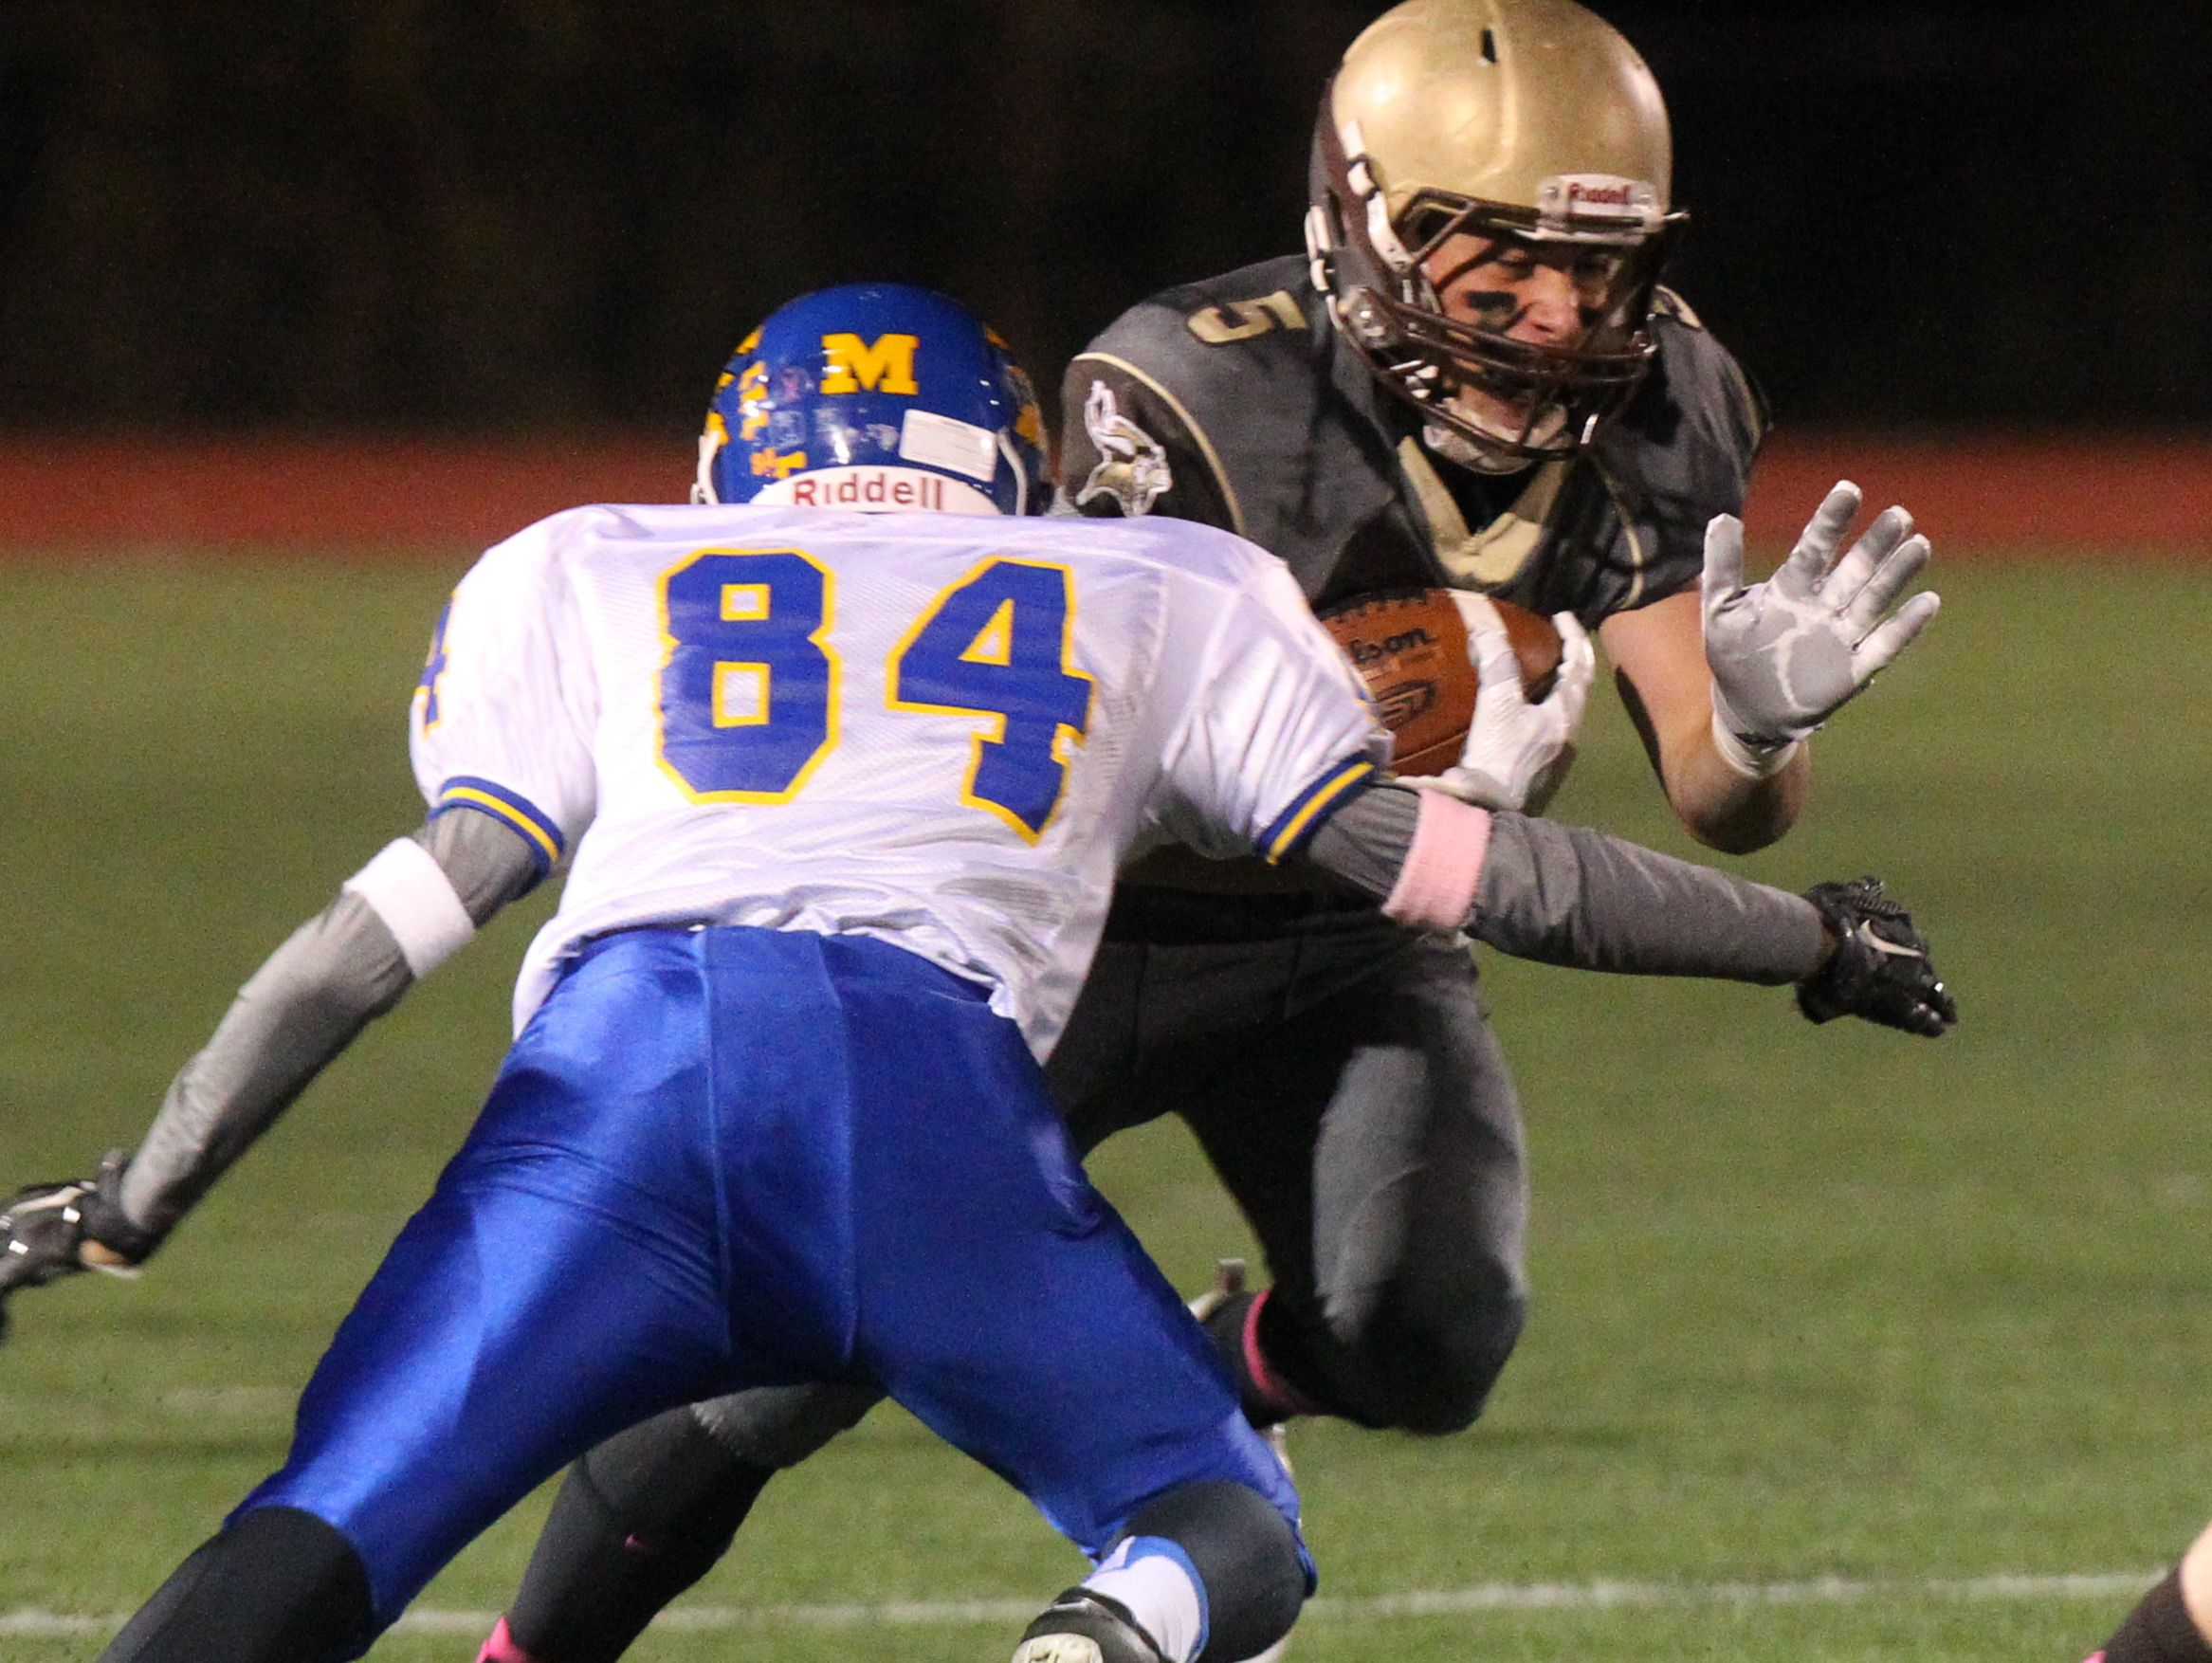 Clarkstown South's Ryan Thomas is tackled by Mahopac's Brendan Diorio during their Class AA playoff game at Clarkstown South Oct. 14, 2016.